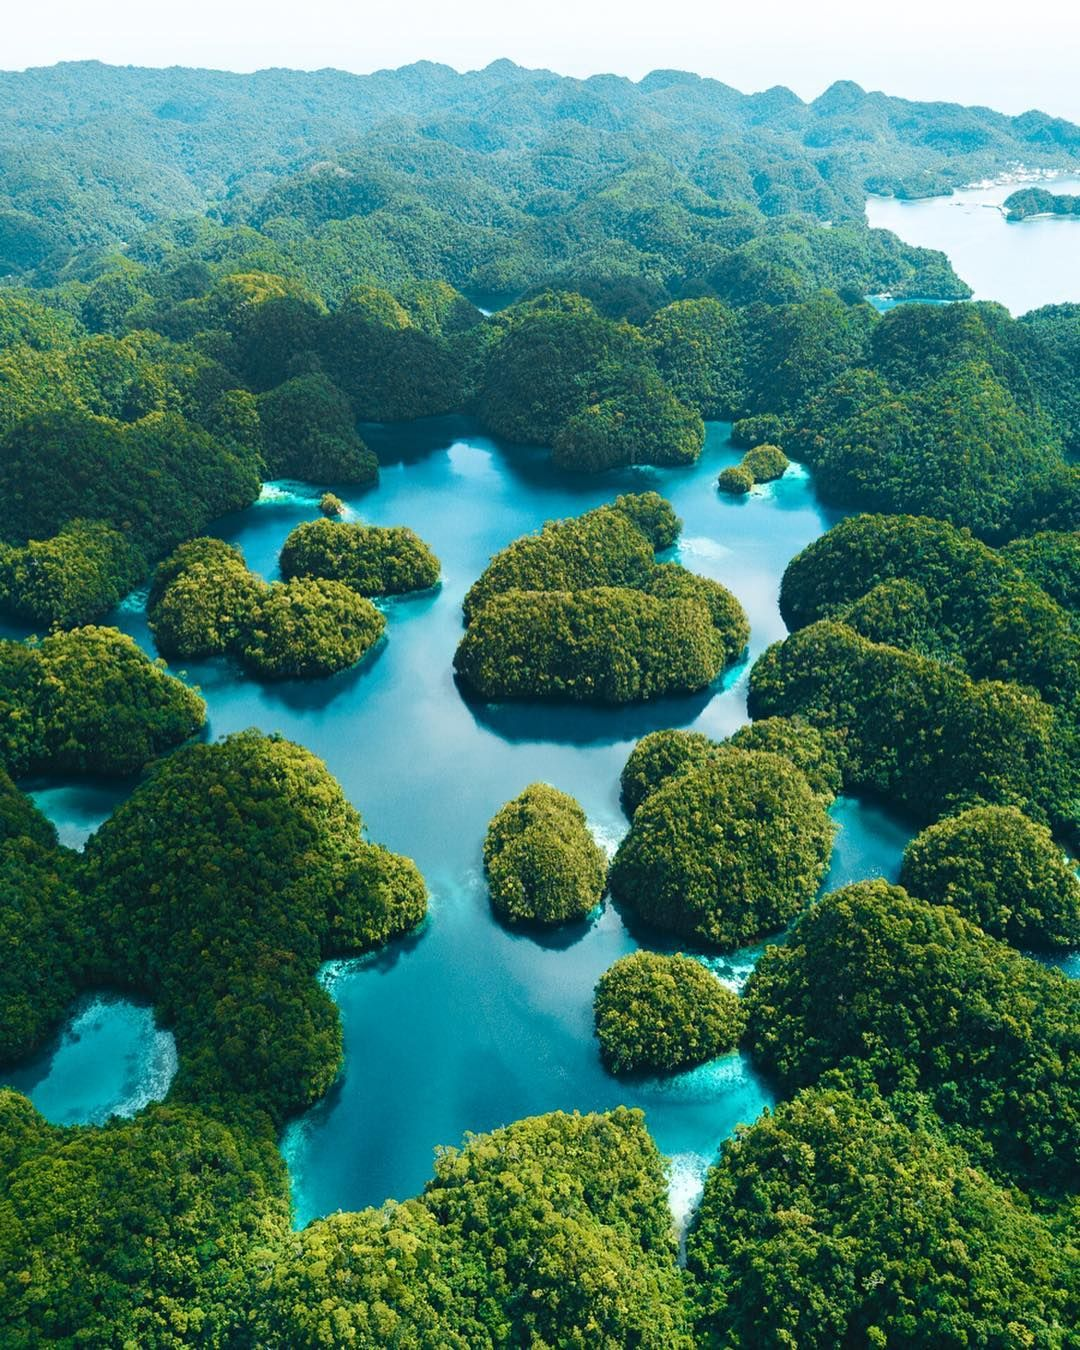 Jackson Groves On Instagram This Is An Amazing Almost Unbelievable Region Of Tropical Islands In Sohoton Nationa Tropical Islands National Parks Philippines